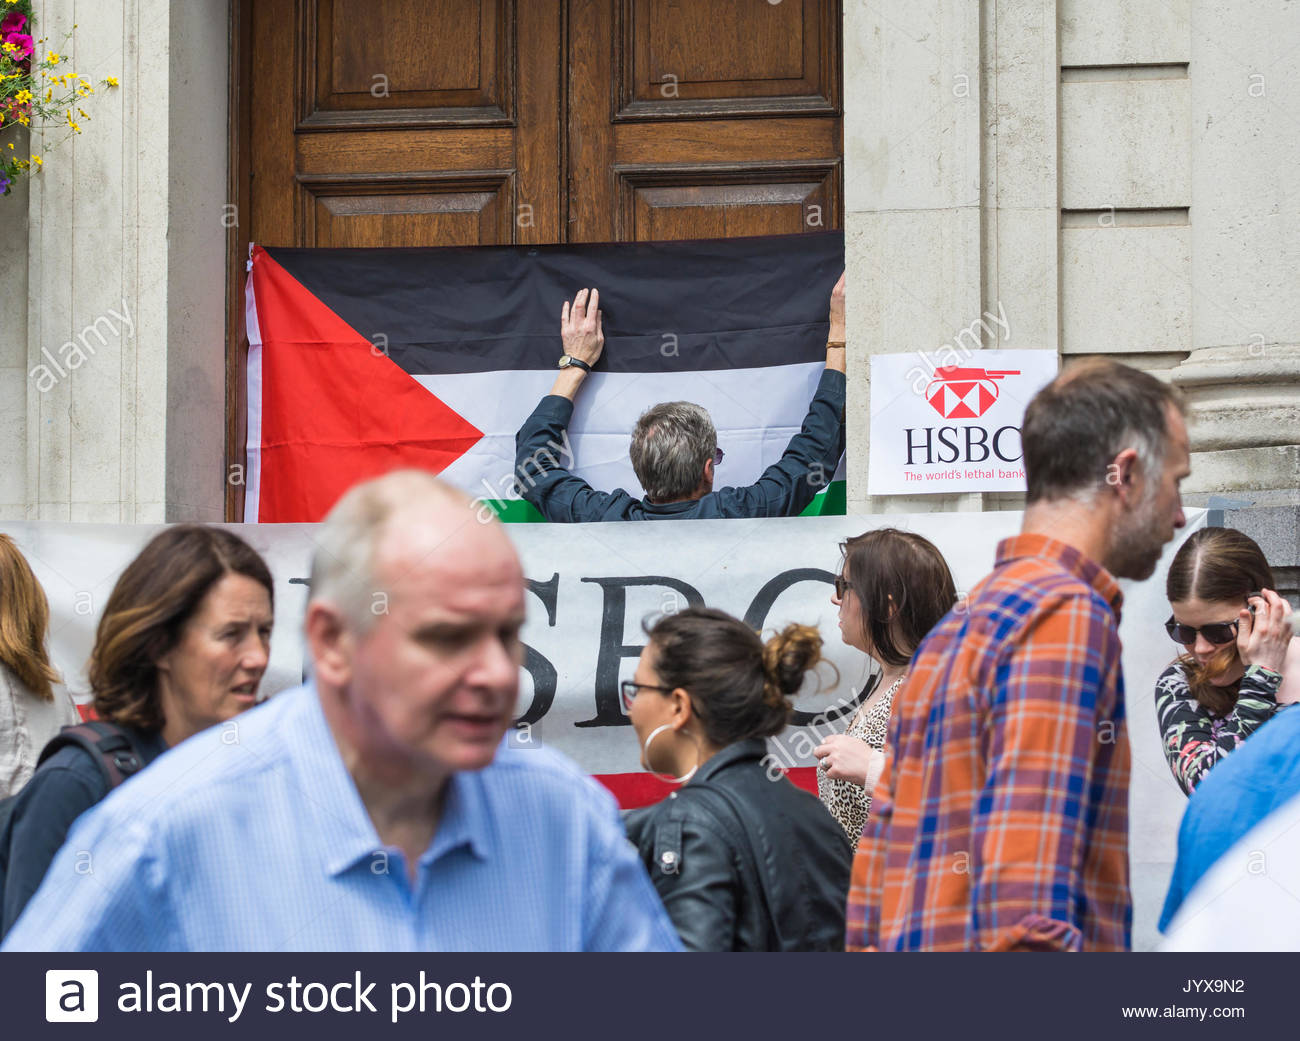 Justice for Palestine protestor hanging a protest sign on the front entrance to the HSBC bank in Brighton, East - Stock Image